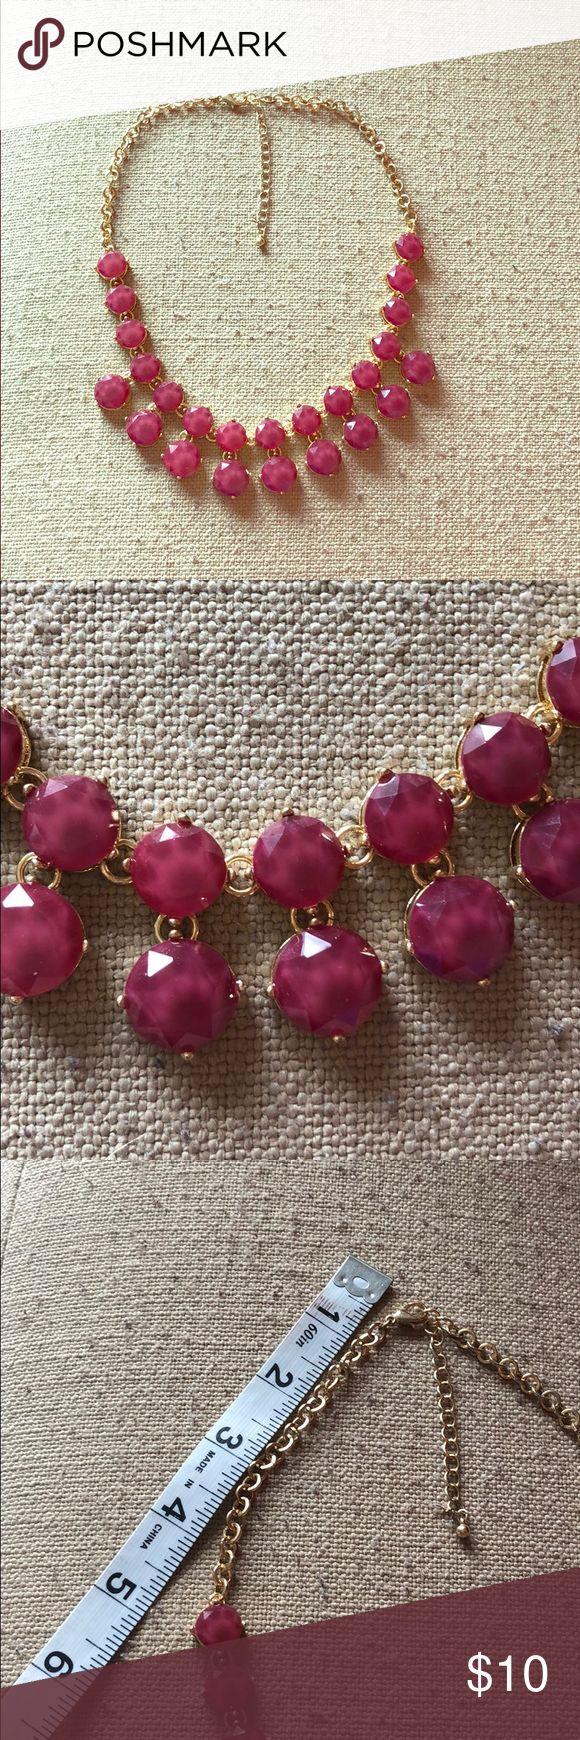 Purple Statement Necklace Sophisticated medium purple stoned statement necklace. Worn just a few times. Perfect pop of color 💟 Francesca's Collections Jewelry Necklaces